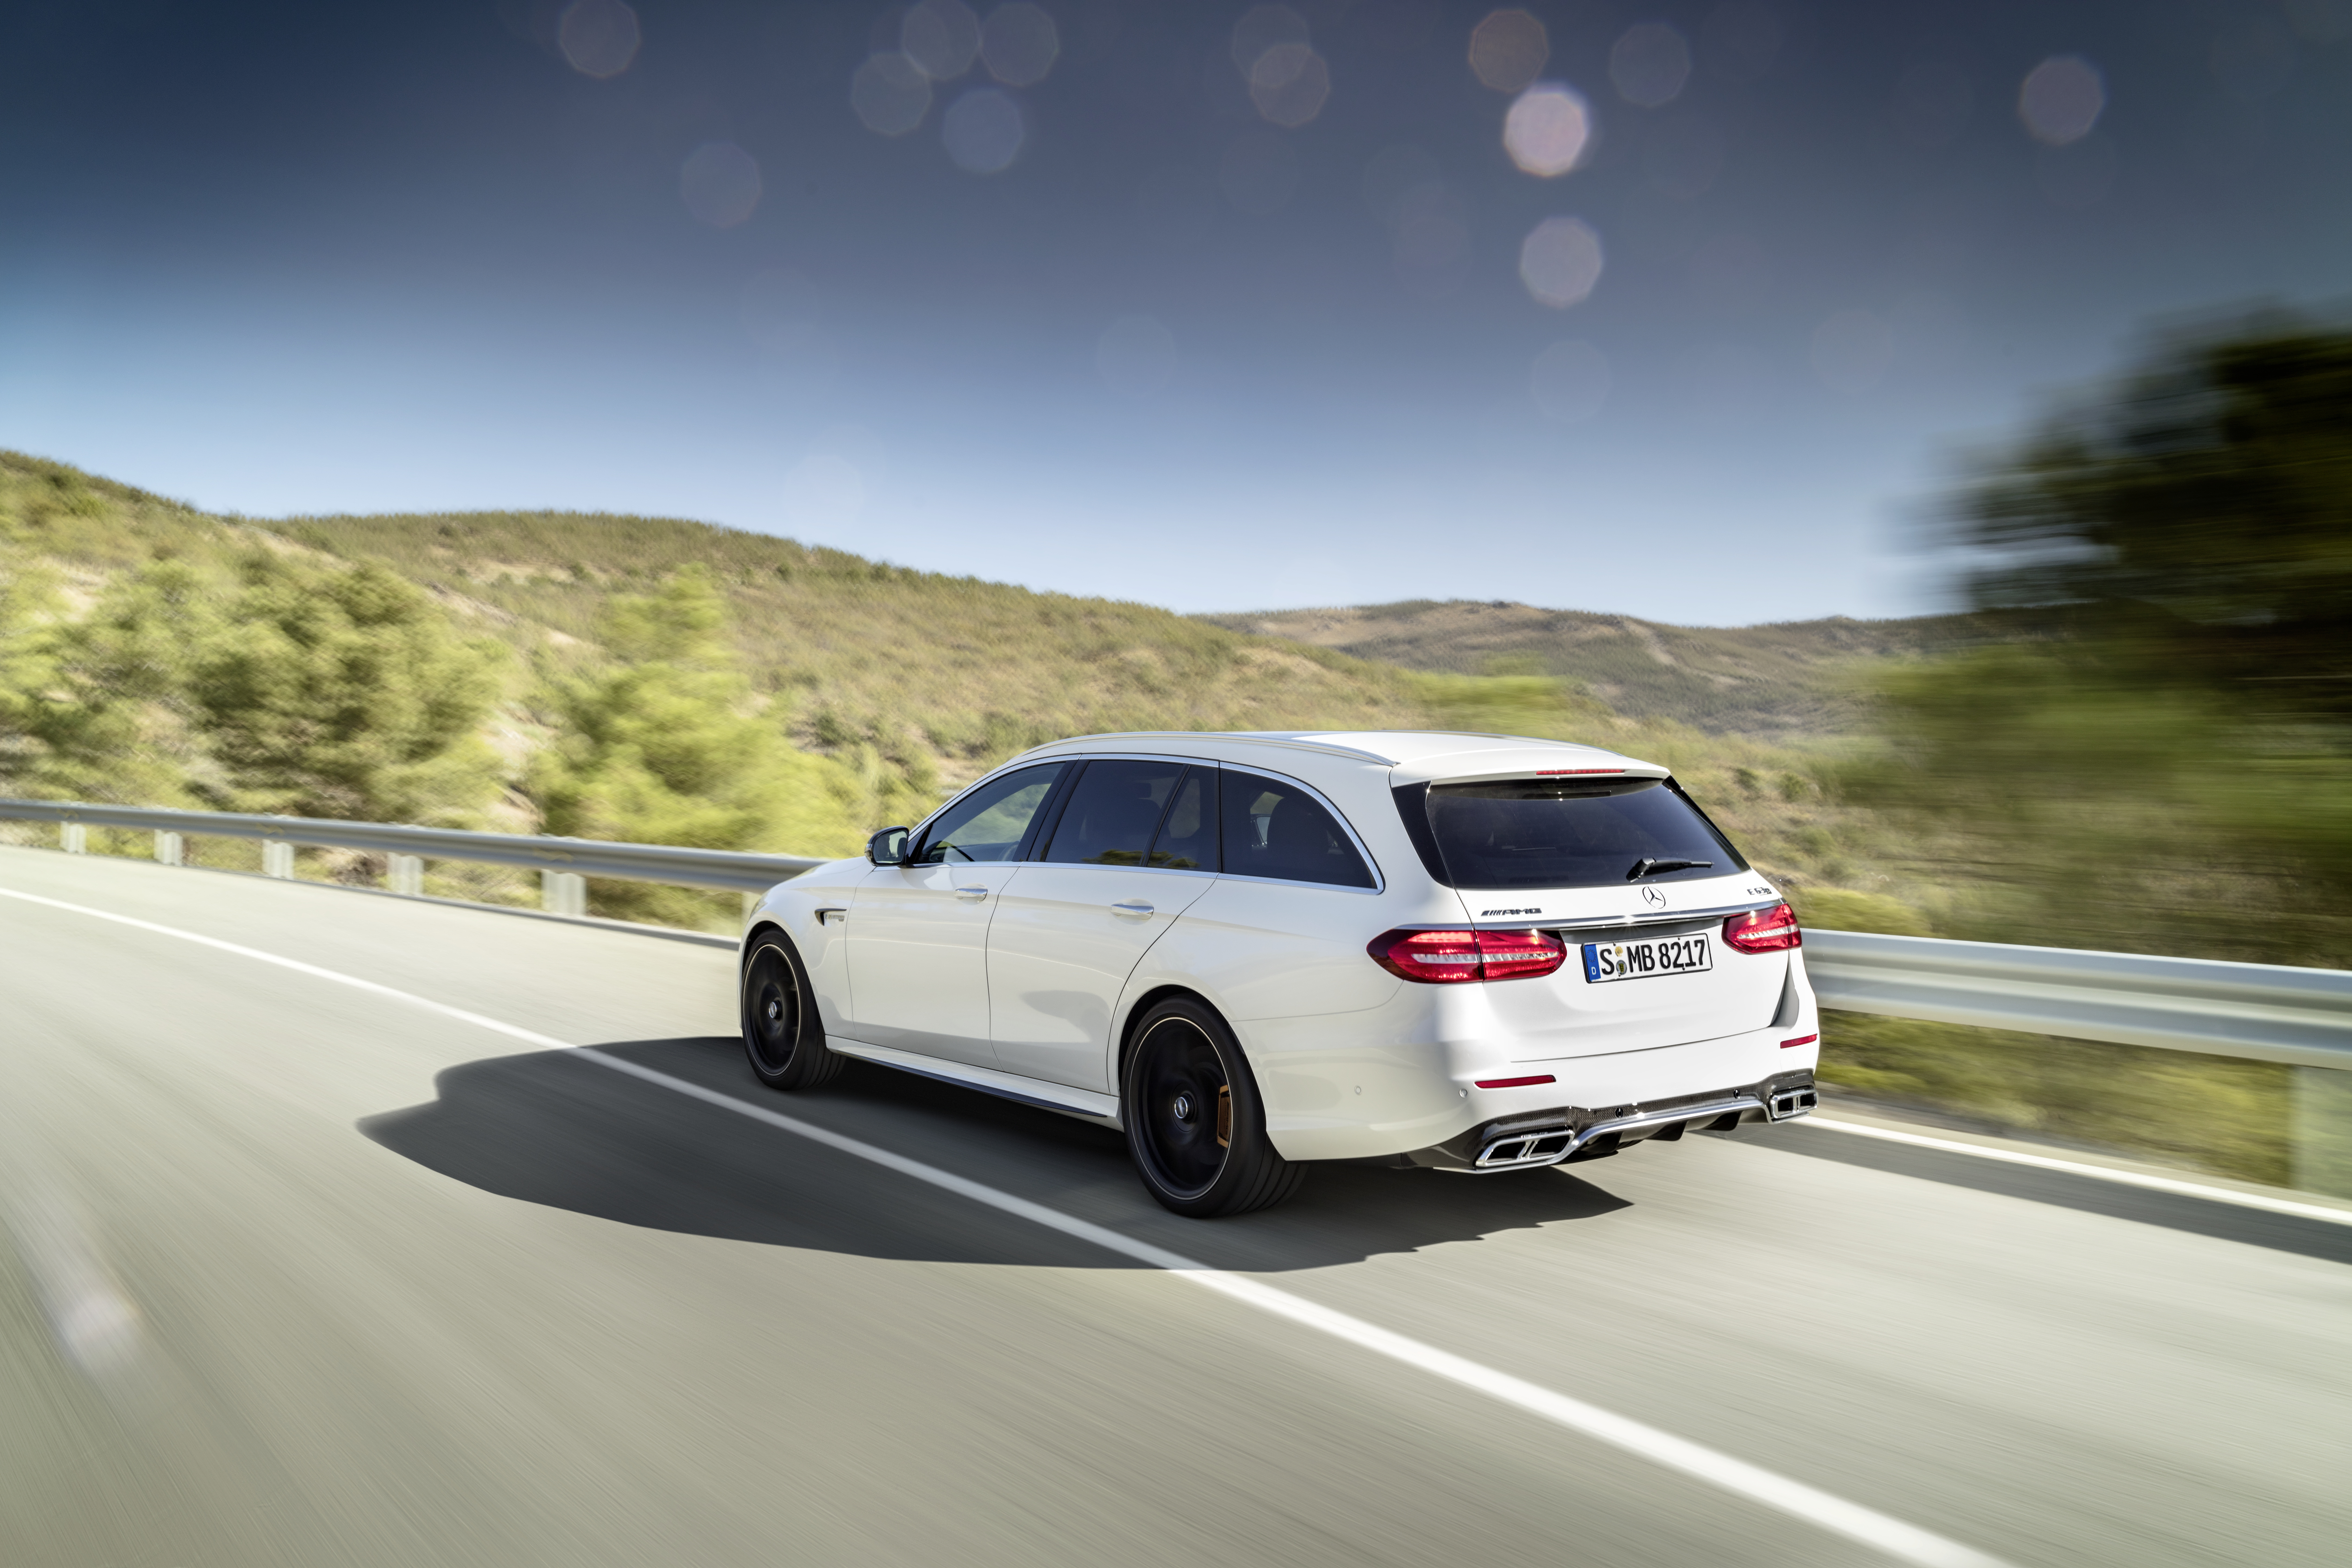 mercedes-amg mercedes amg models price eclass saloon performance engine all-wheel-drive